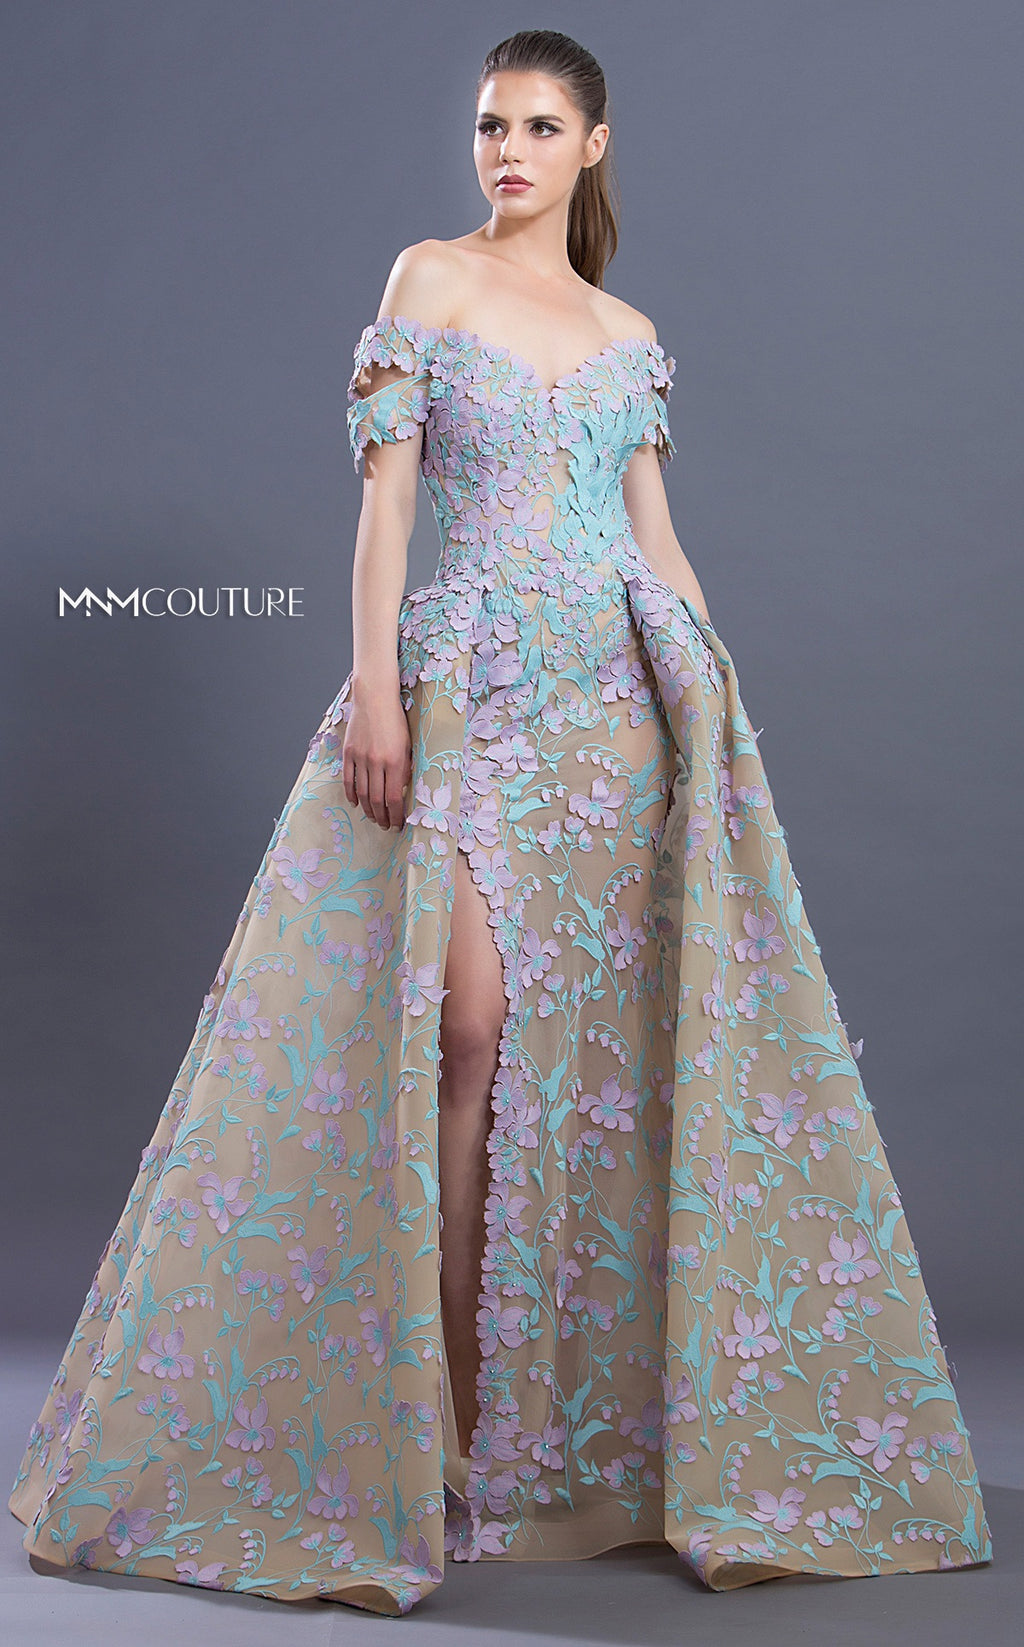 MNM Couture K3637 Floral Appliqué Off-Shoulder Gown - CYC Boutique